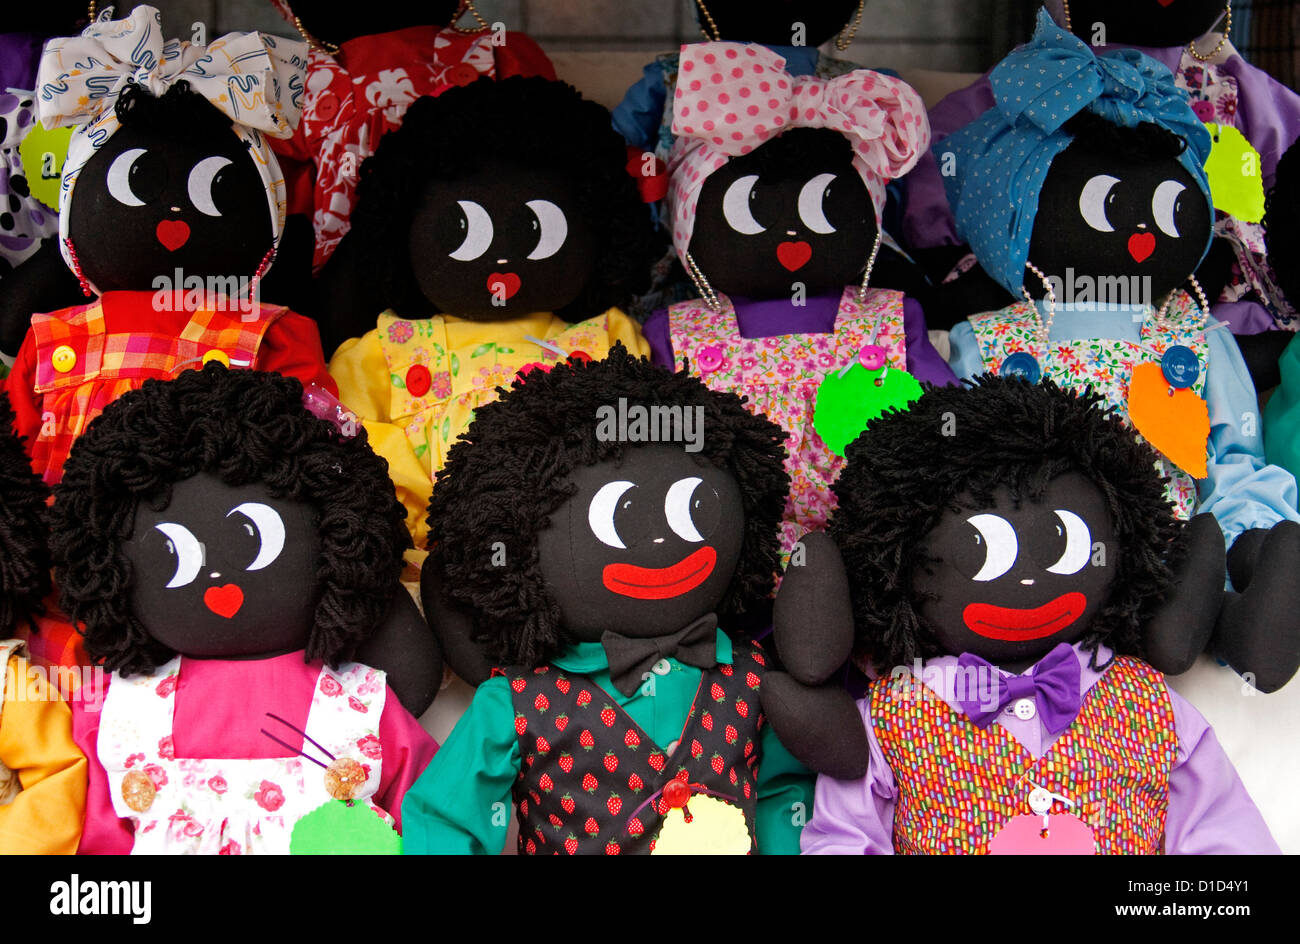 Group of smiling golliwogs with bright and colourful clothing - hand-made toys Stock Photo